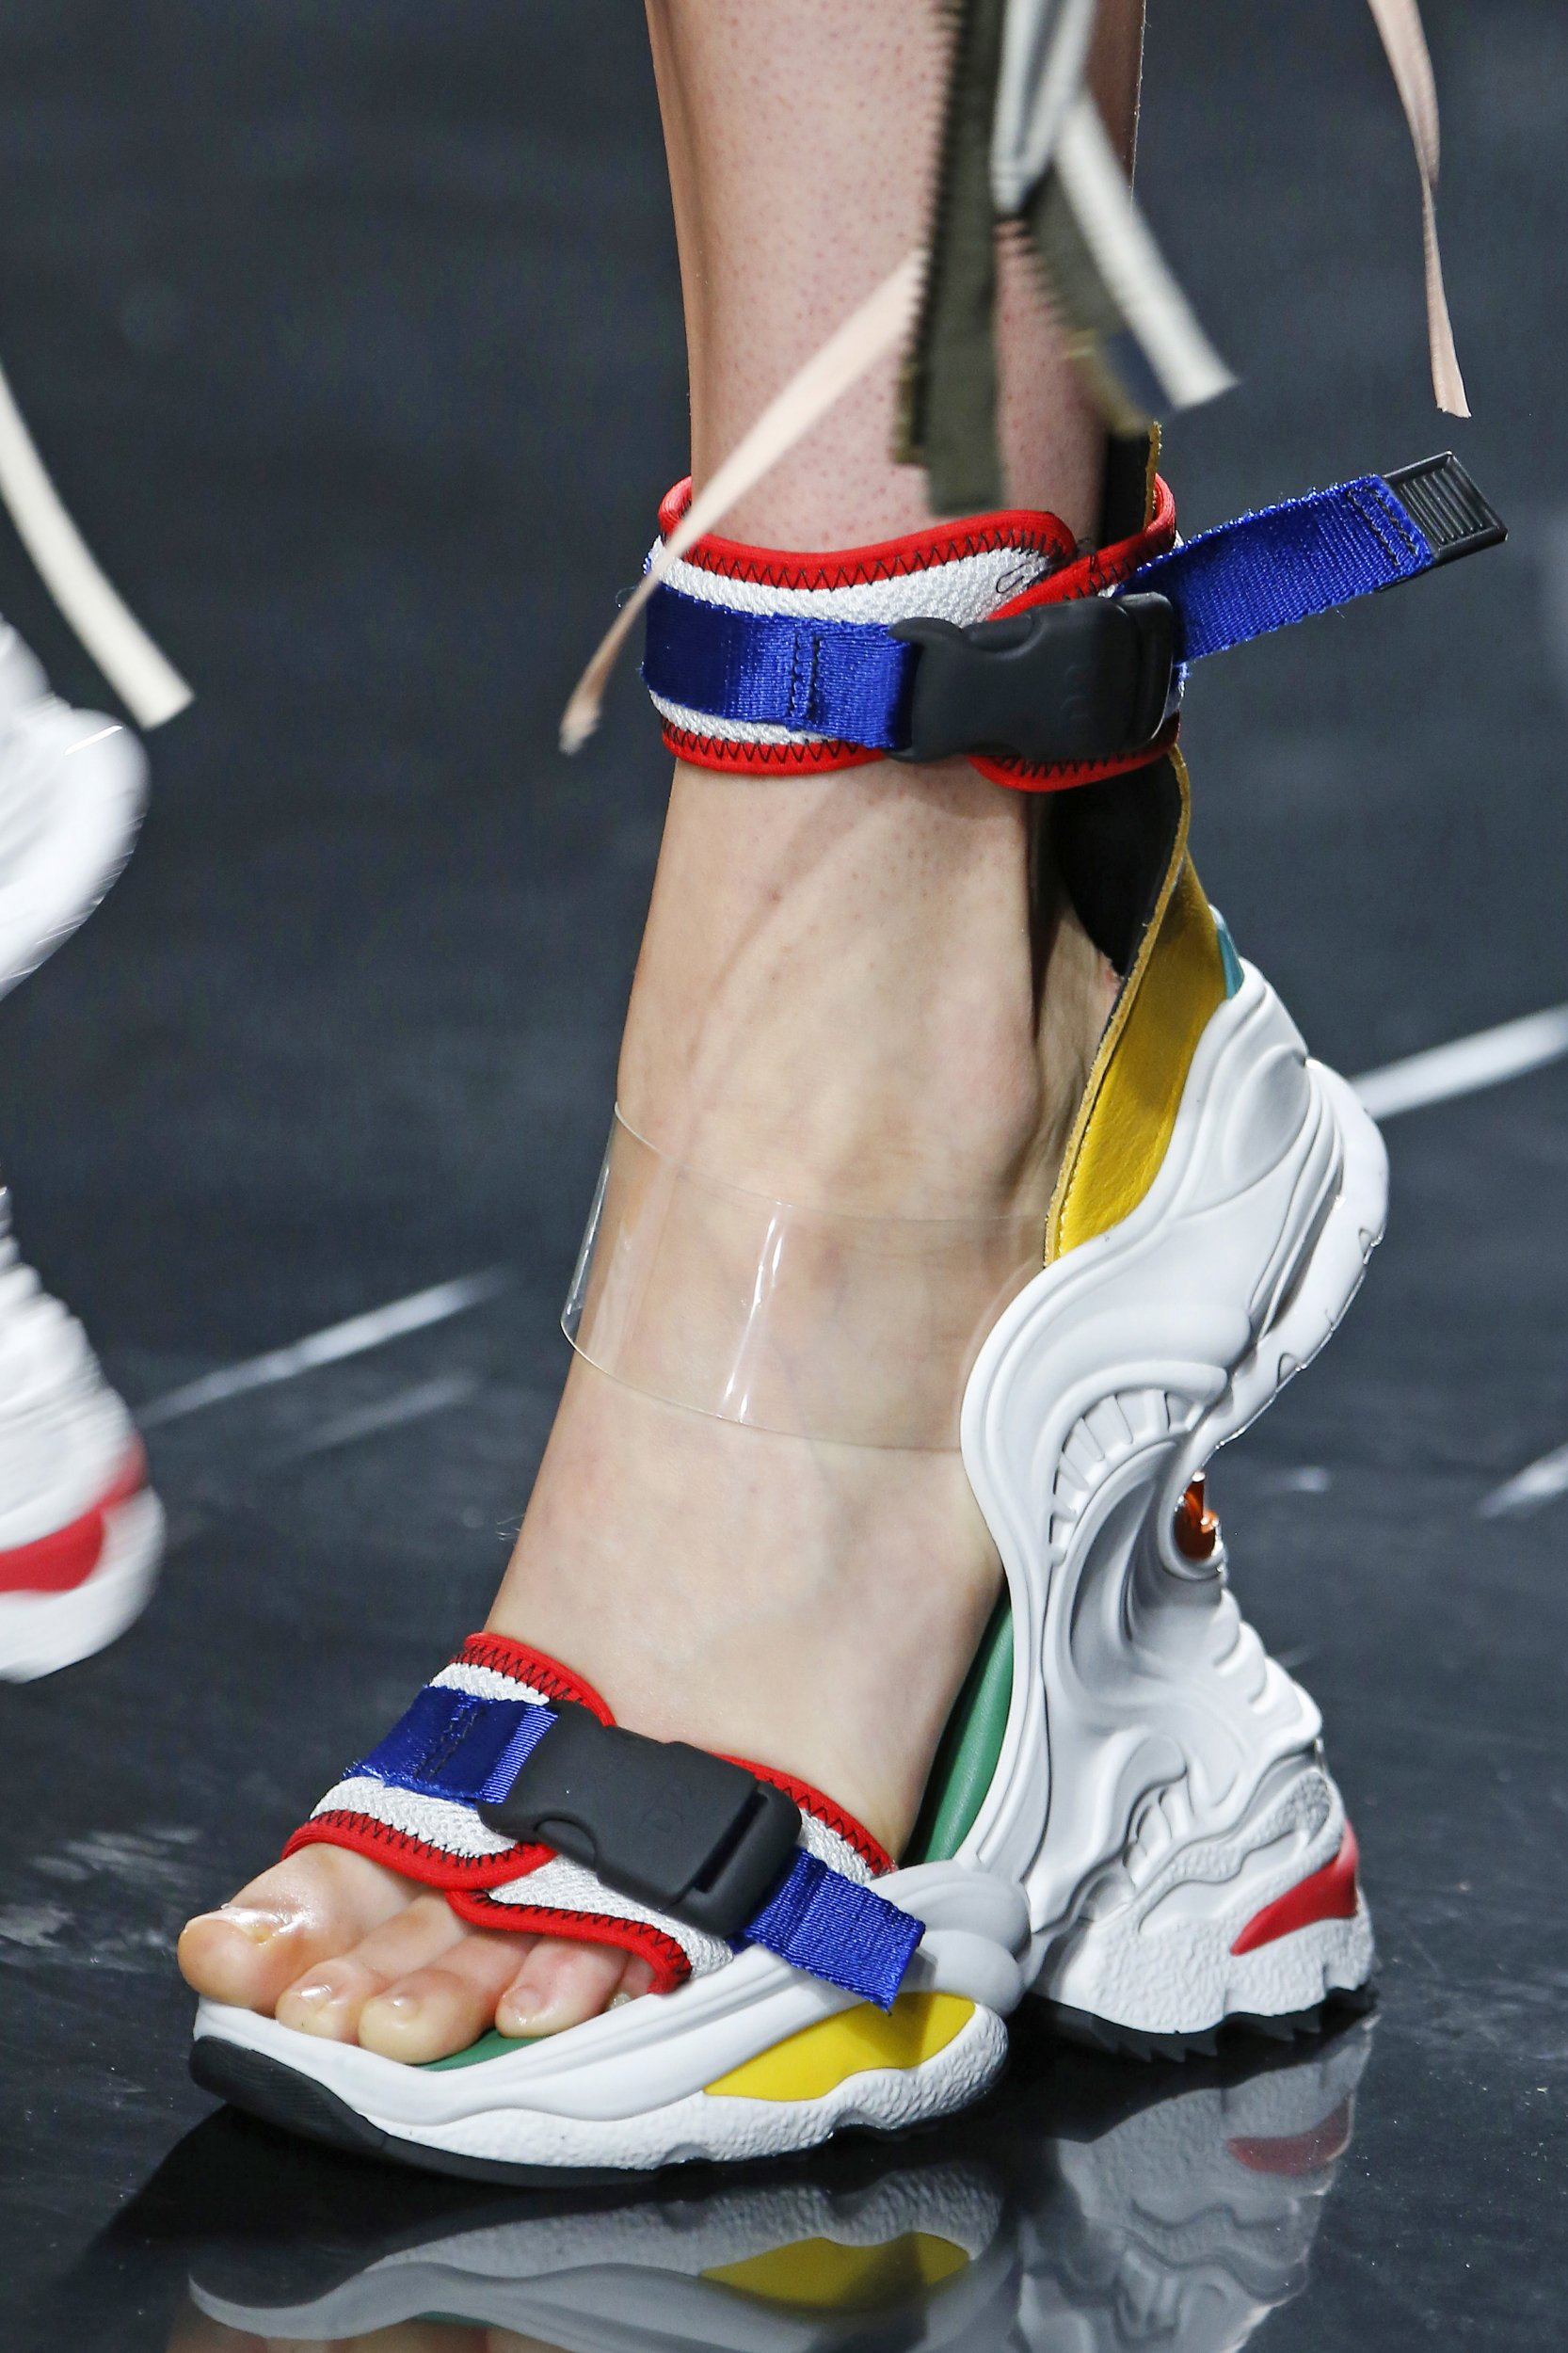 These ugly trainer heels will let you